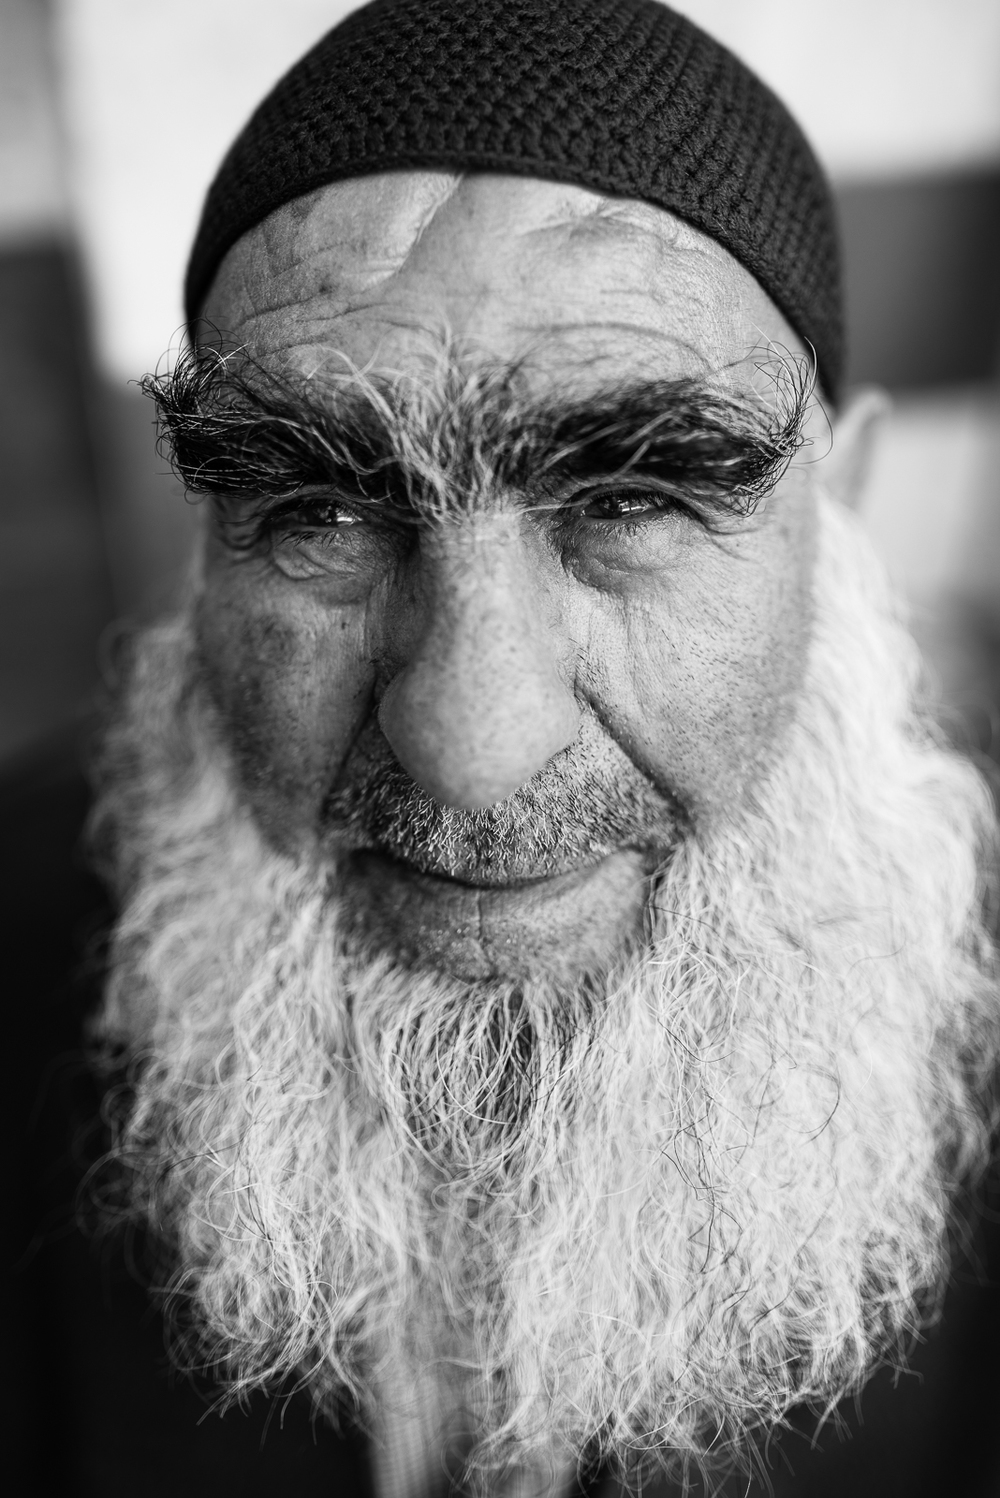 Big beard, big smiley. Diyarbakir